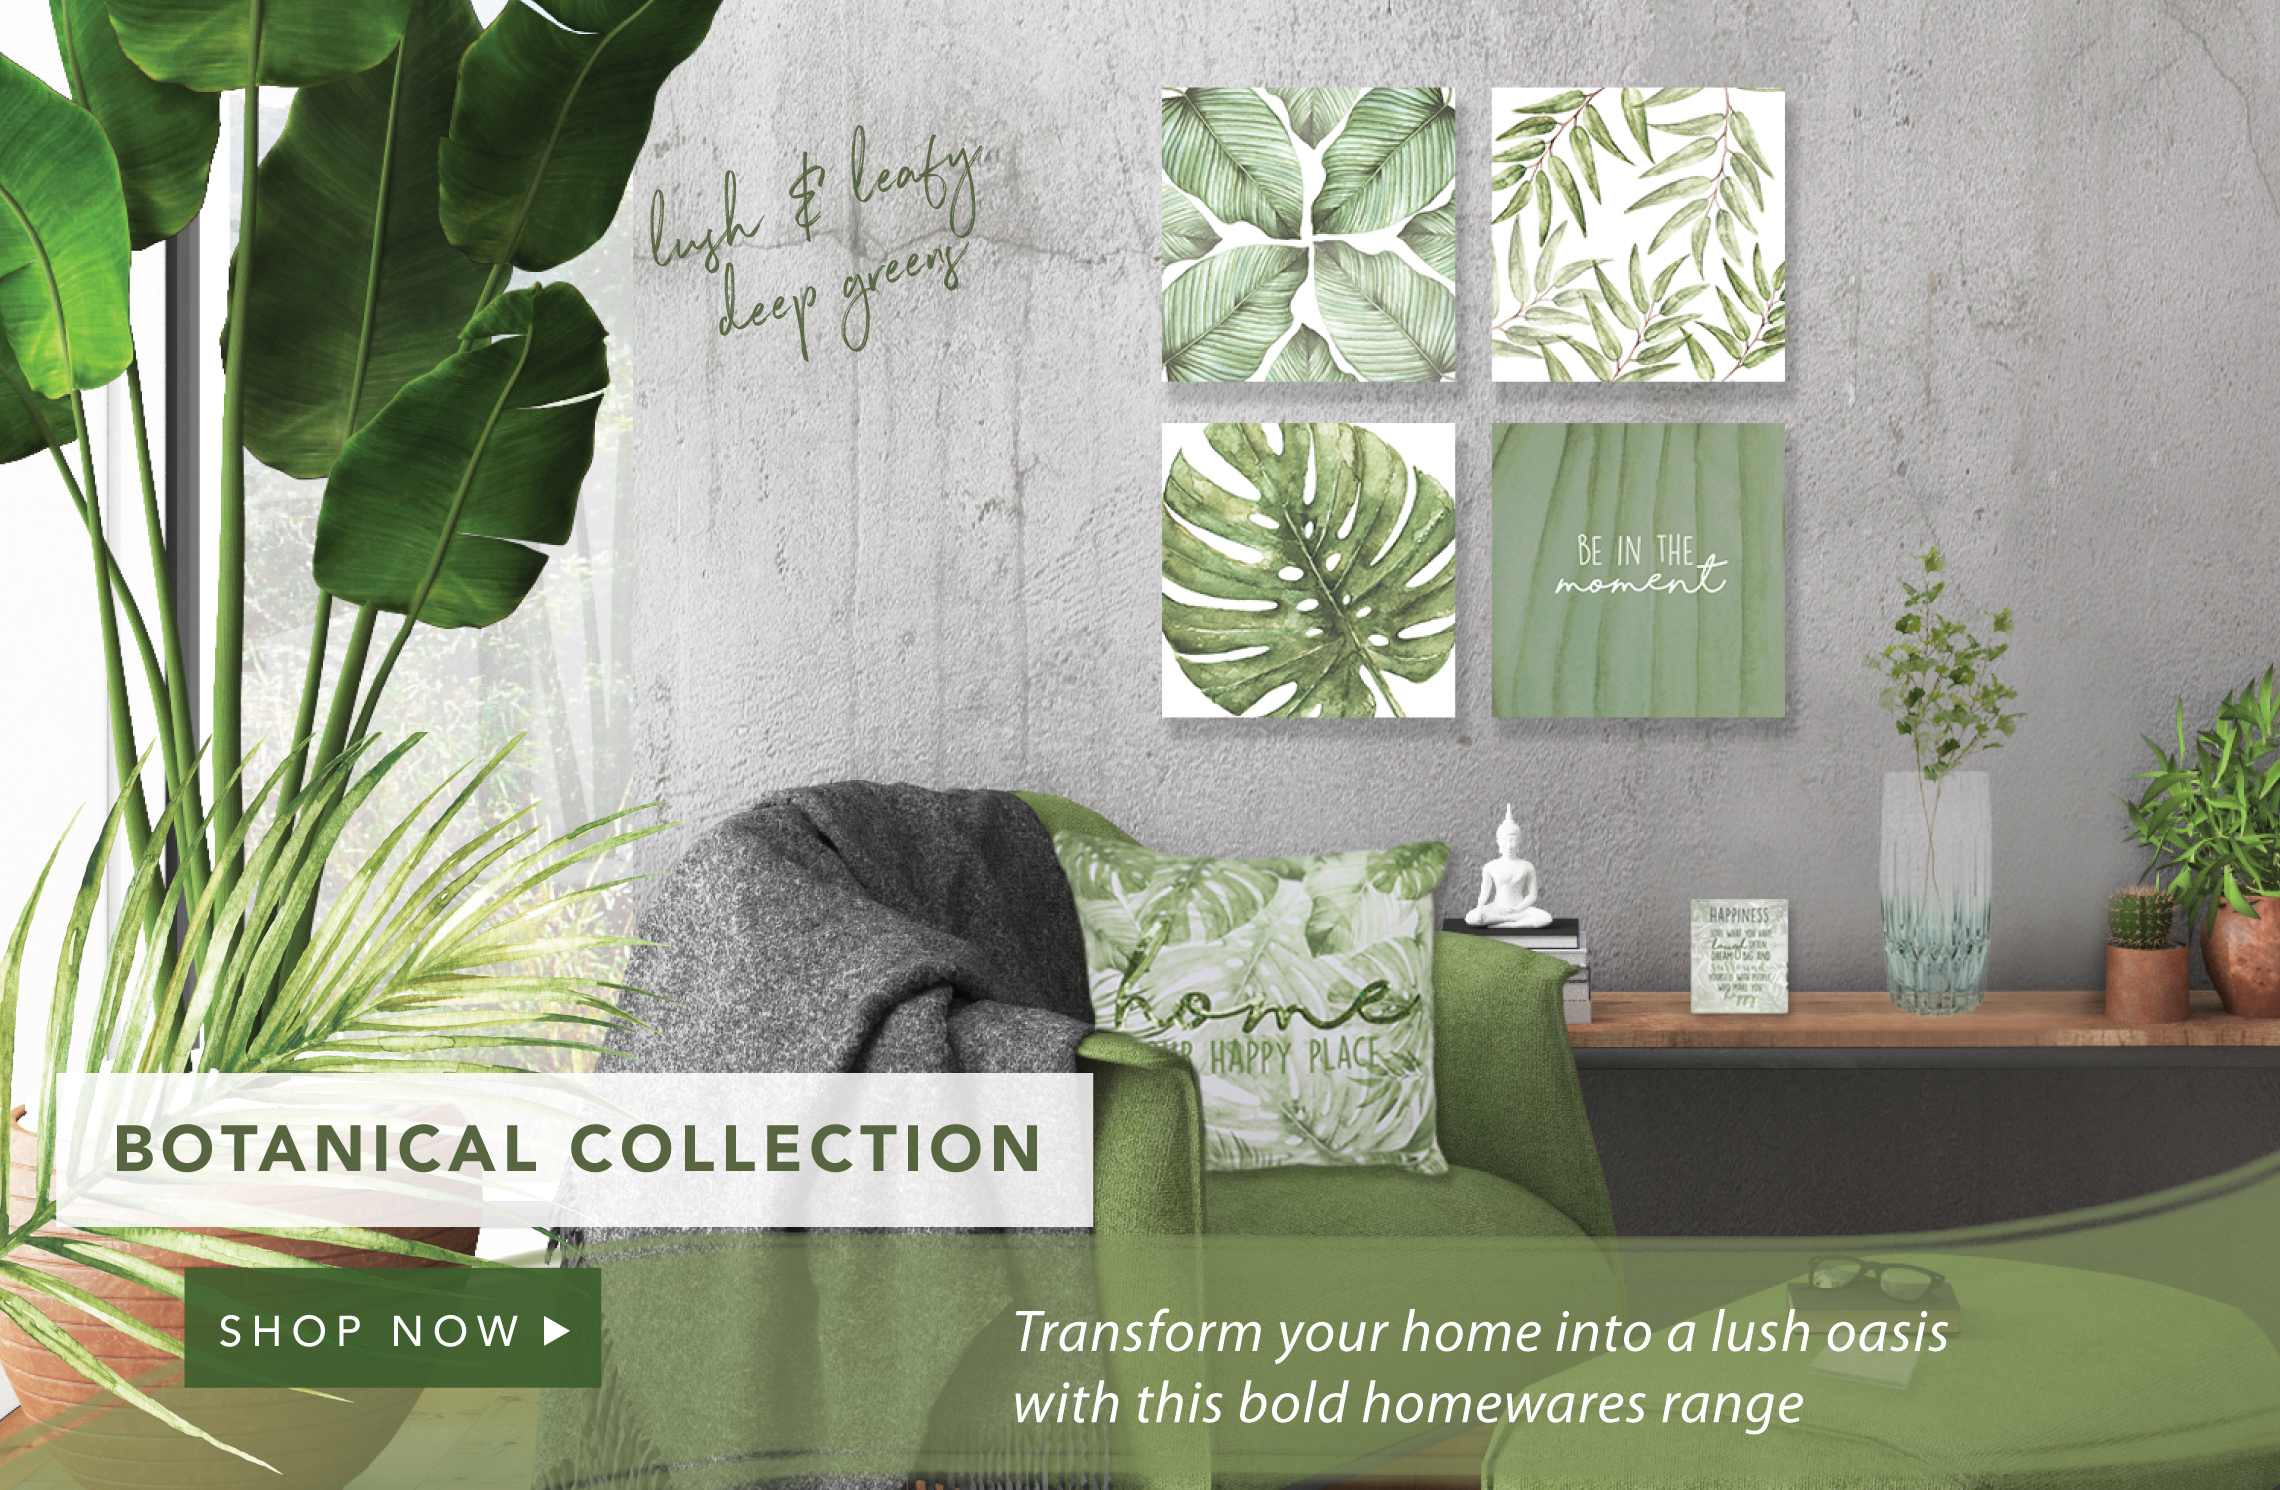 Transform your home into a lush, tropical oasis with this bold homewares range